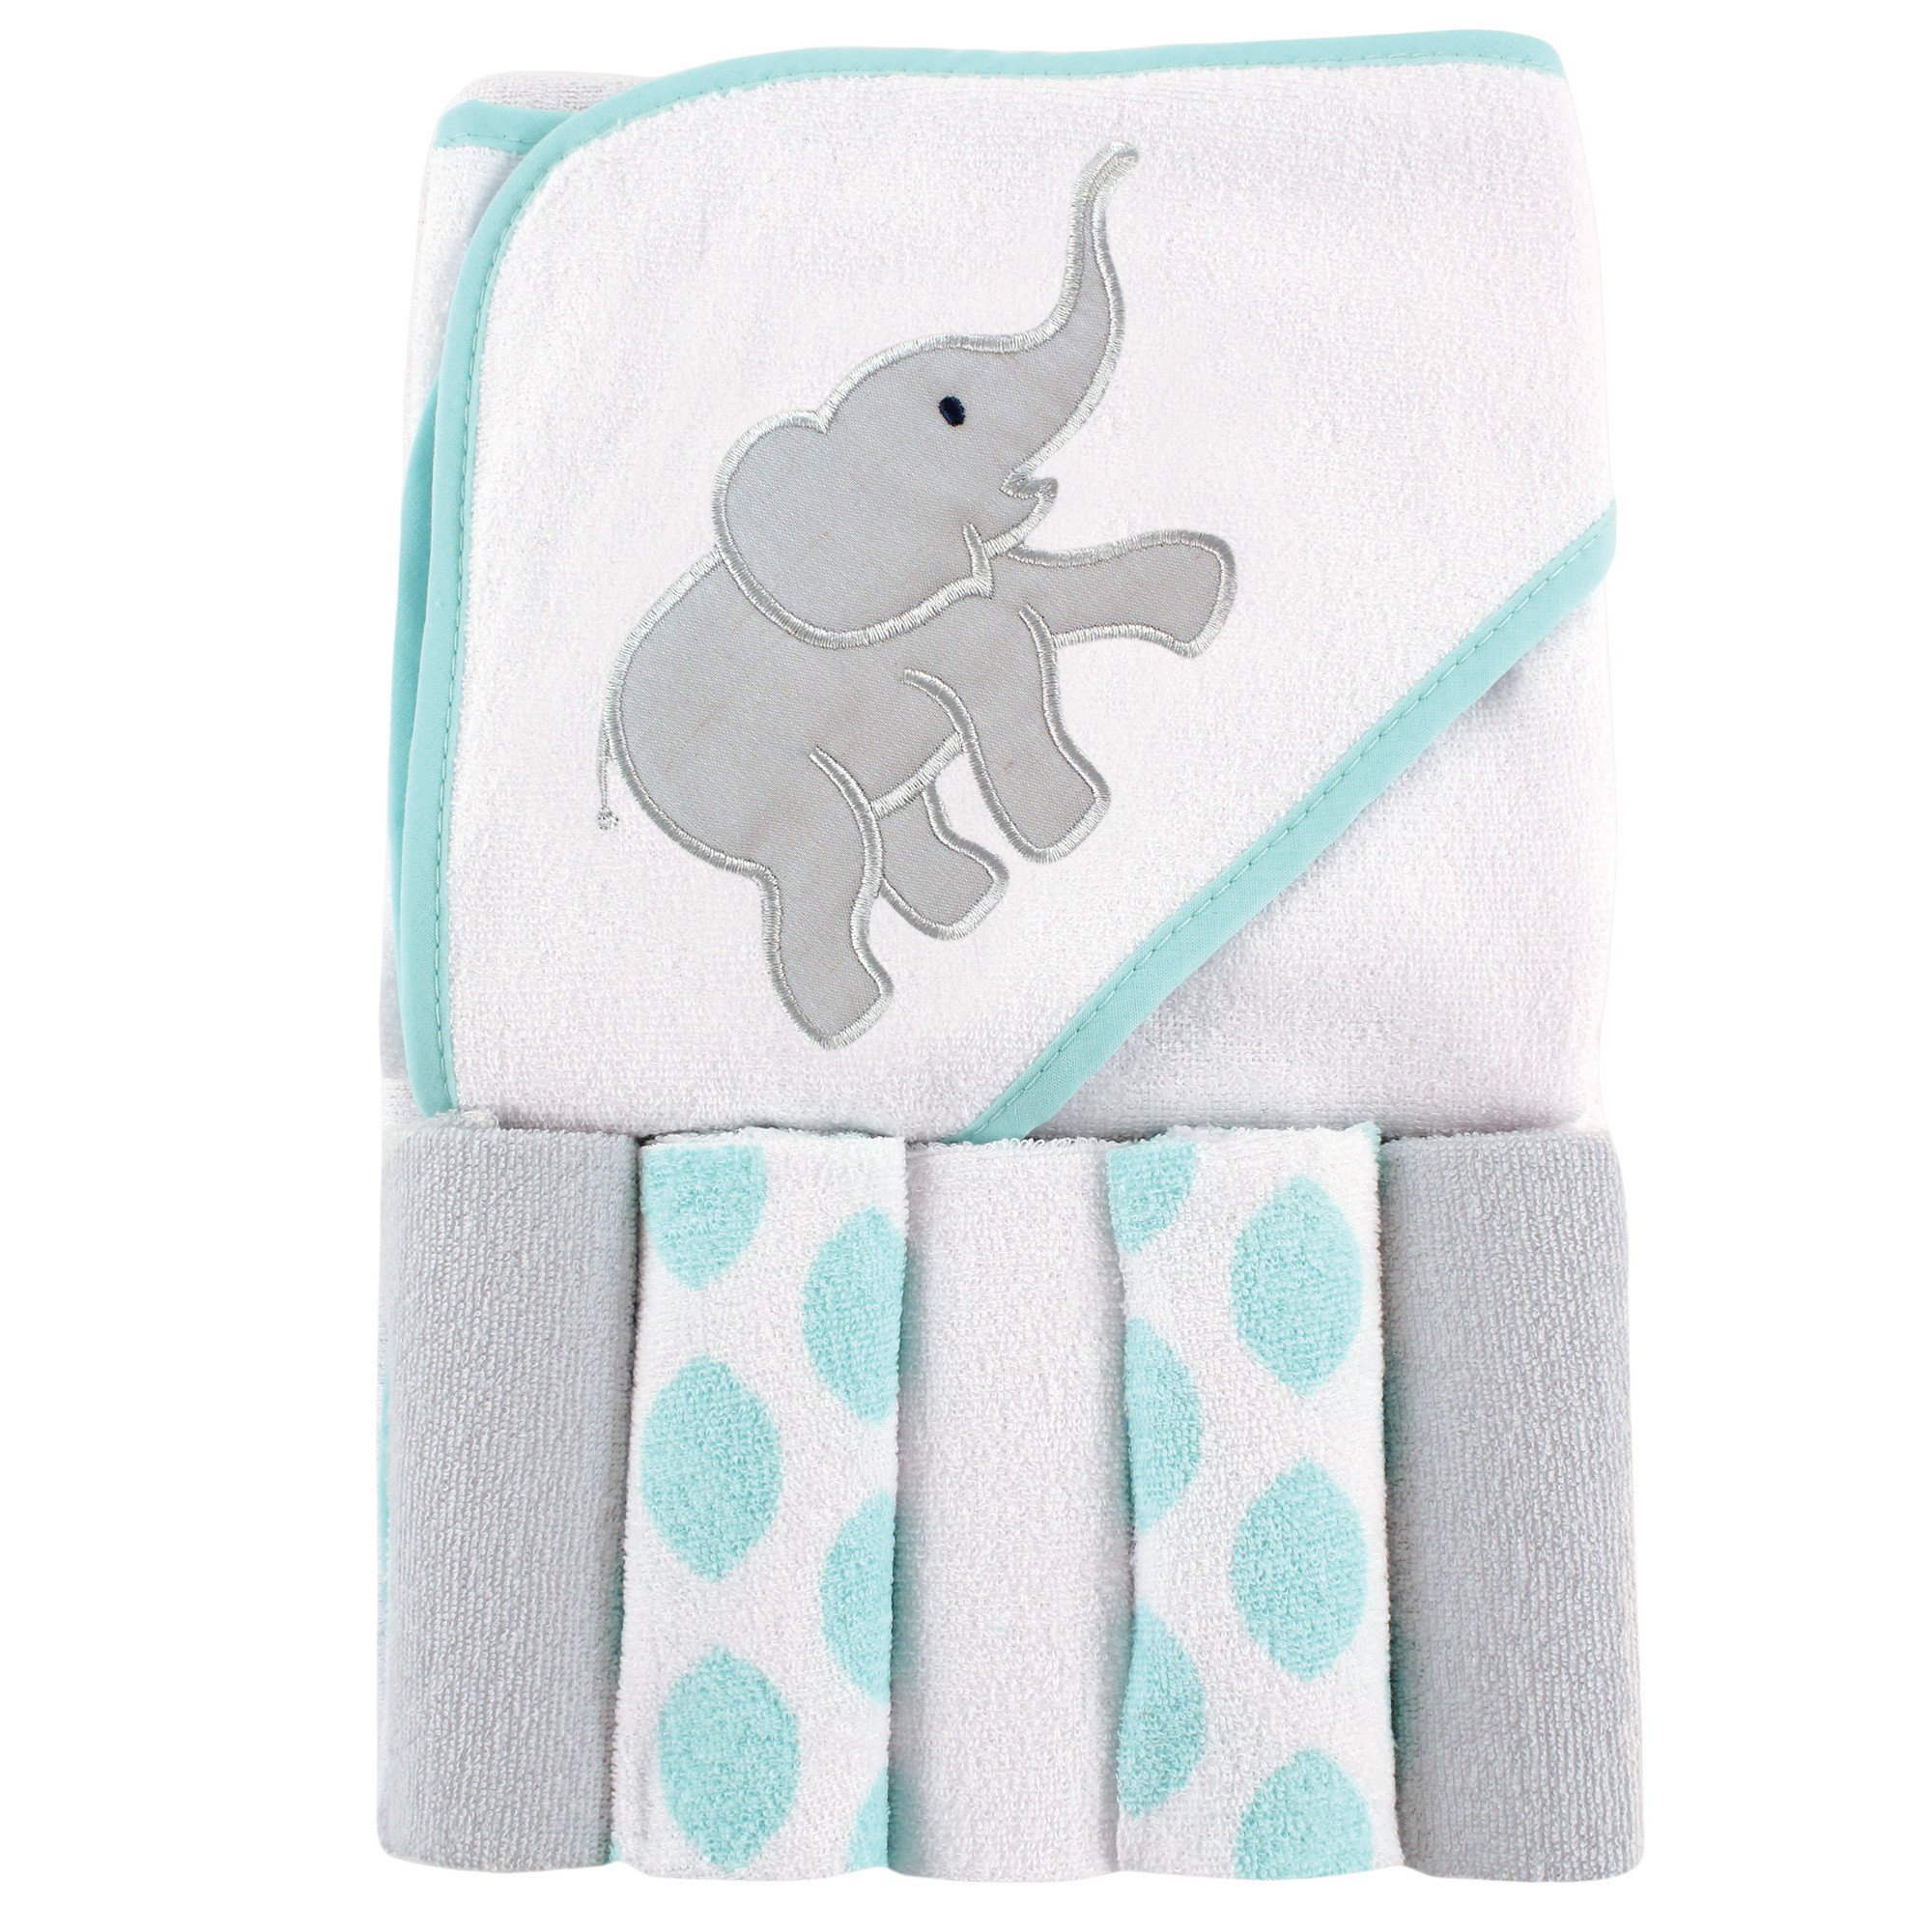 Luvable Friends Hooded Towel with 5 Washcloths, Ikat Elephant